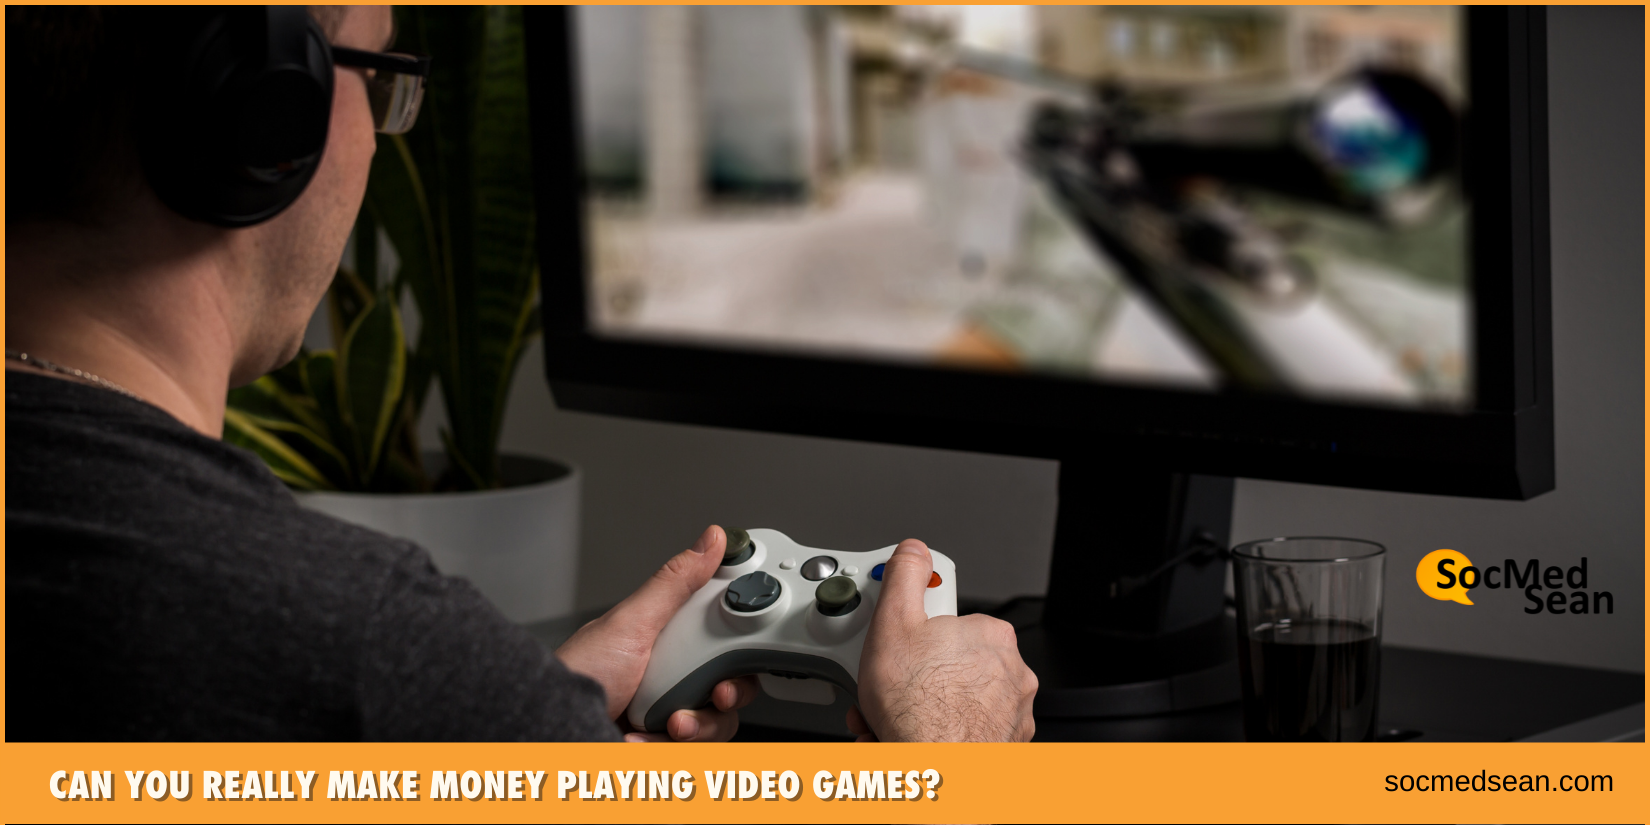 Can you really make money playing video games?